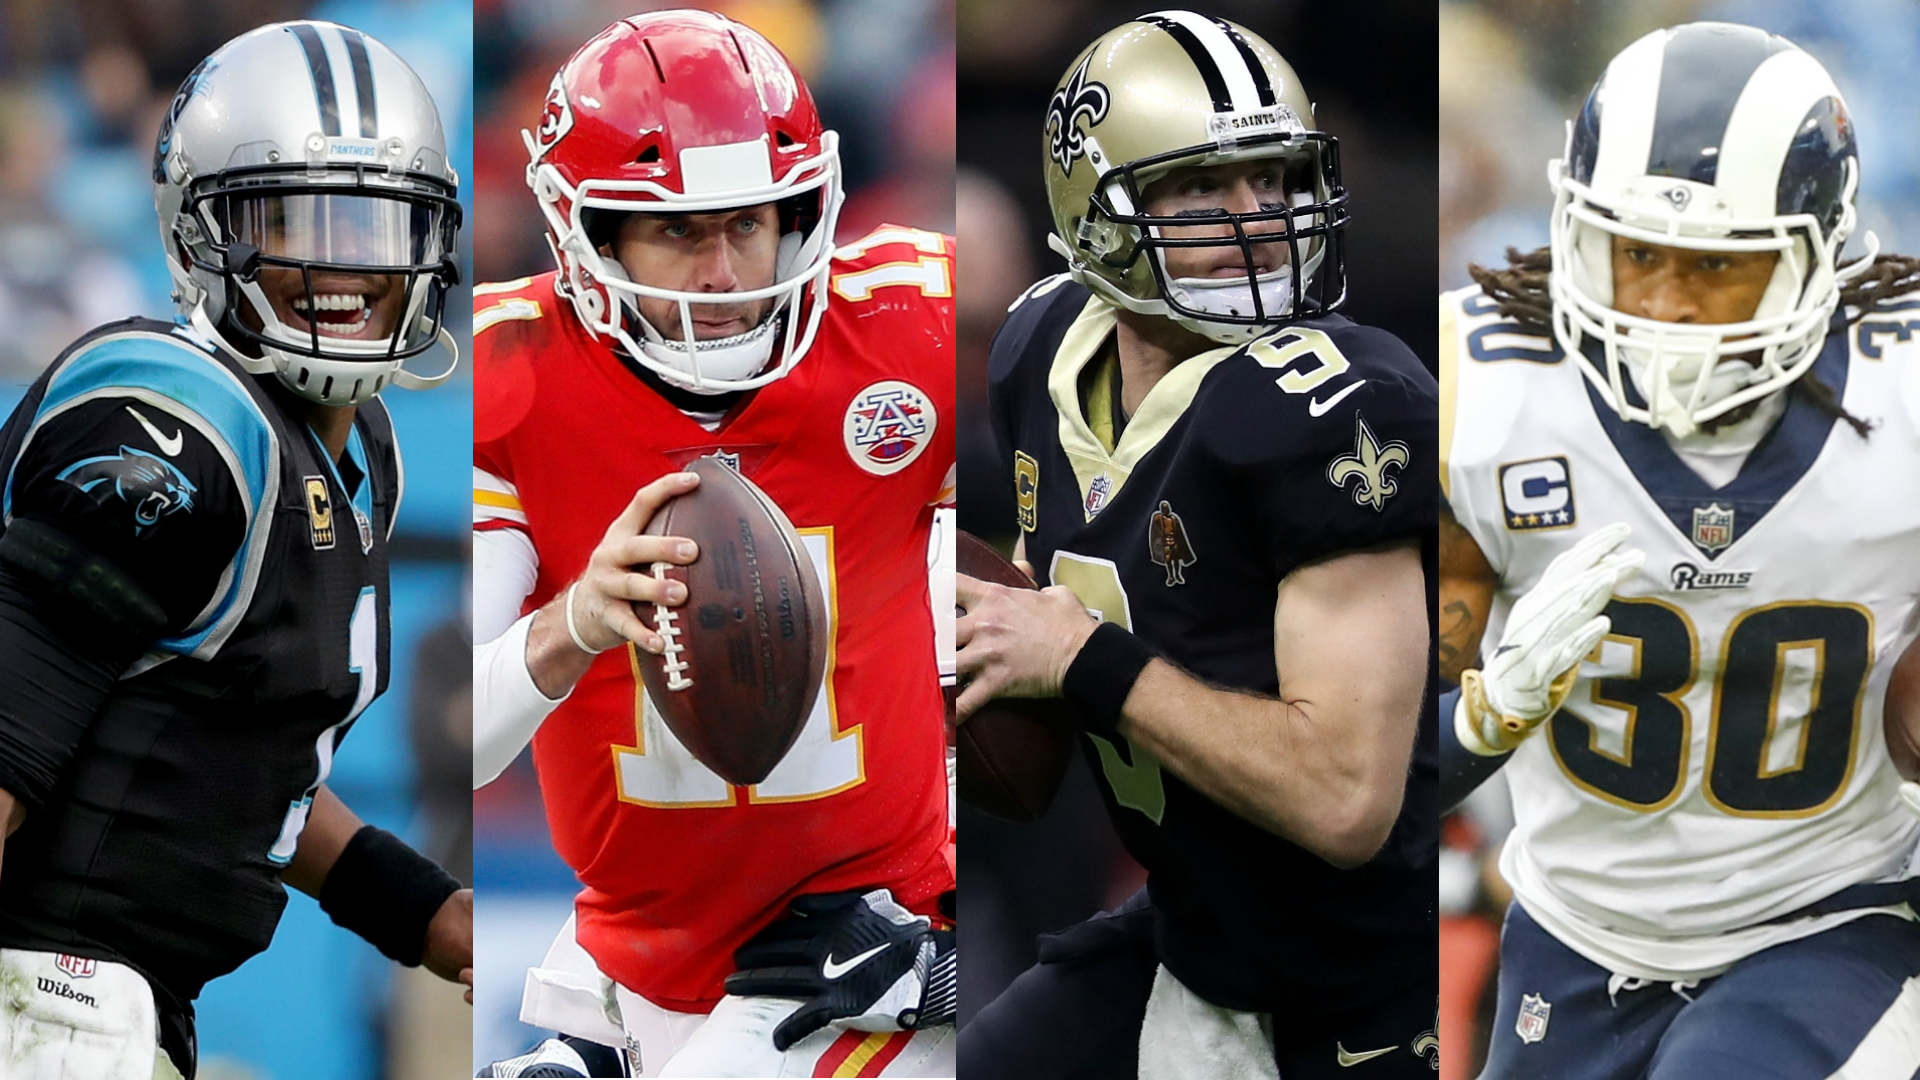 NFL playoff schedule: League releases times, TV information for postseason